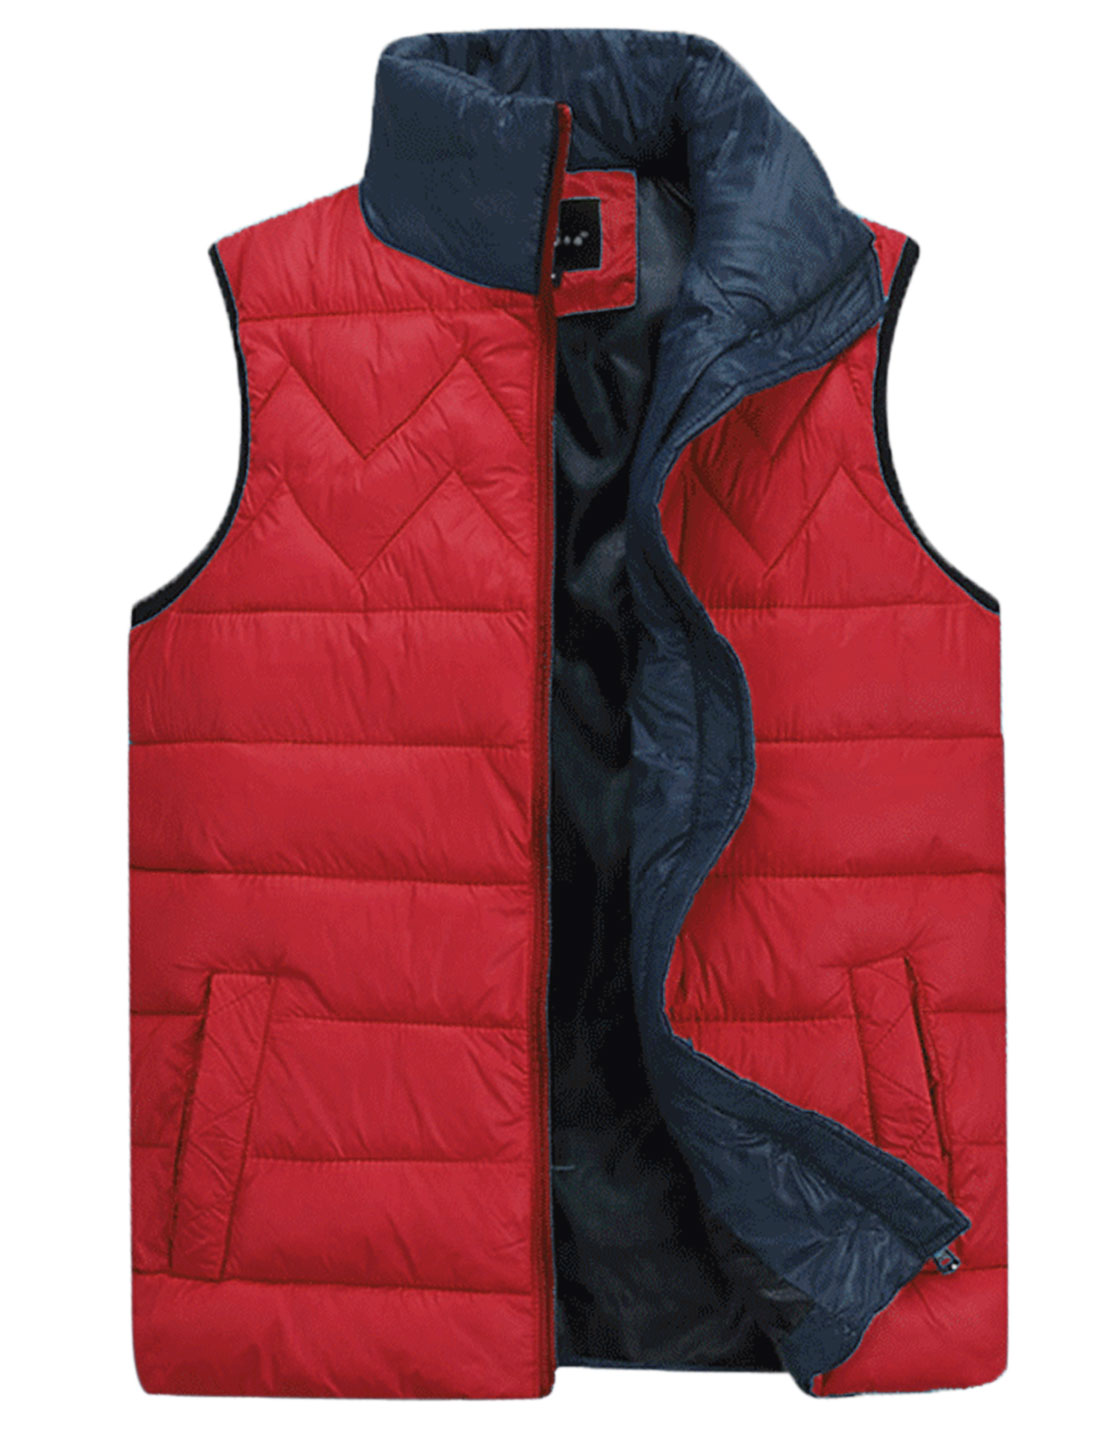 Men Stand Collar Interior Pockets Fashionable Padded Vest Red M